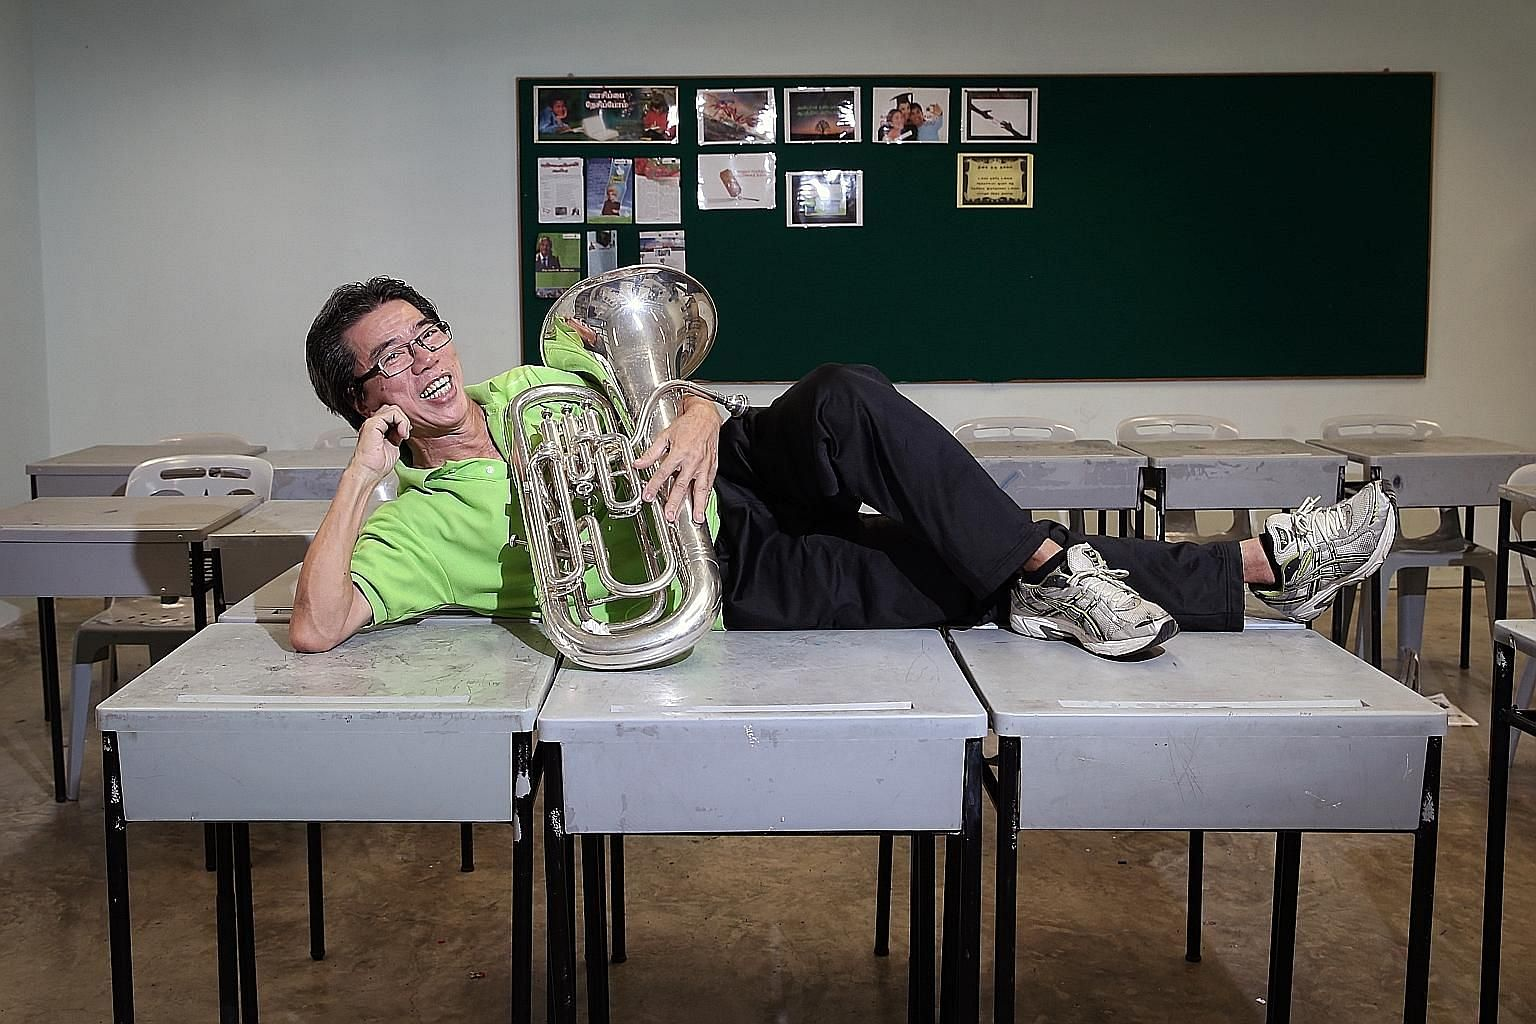 Mr Chiang with a baritone horn - the instrument he played at the 1966 National Day Parade - in St Gabriel's Secondary School. To ensure punctuality, he and others had stayed overnight at the school and slept on tables. A then 15-year-old Bernard Chia